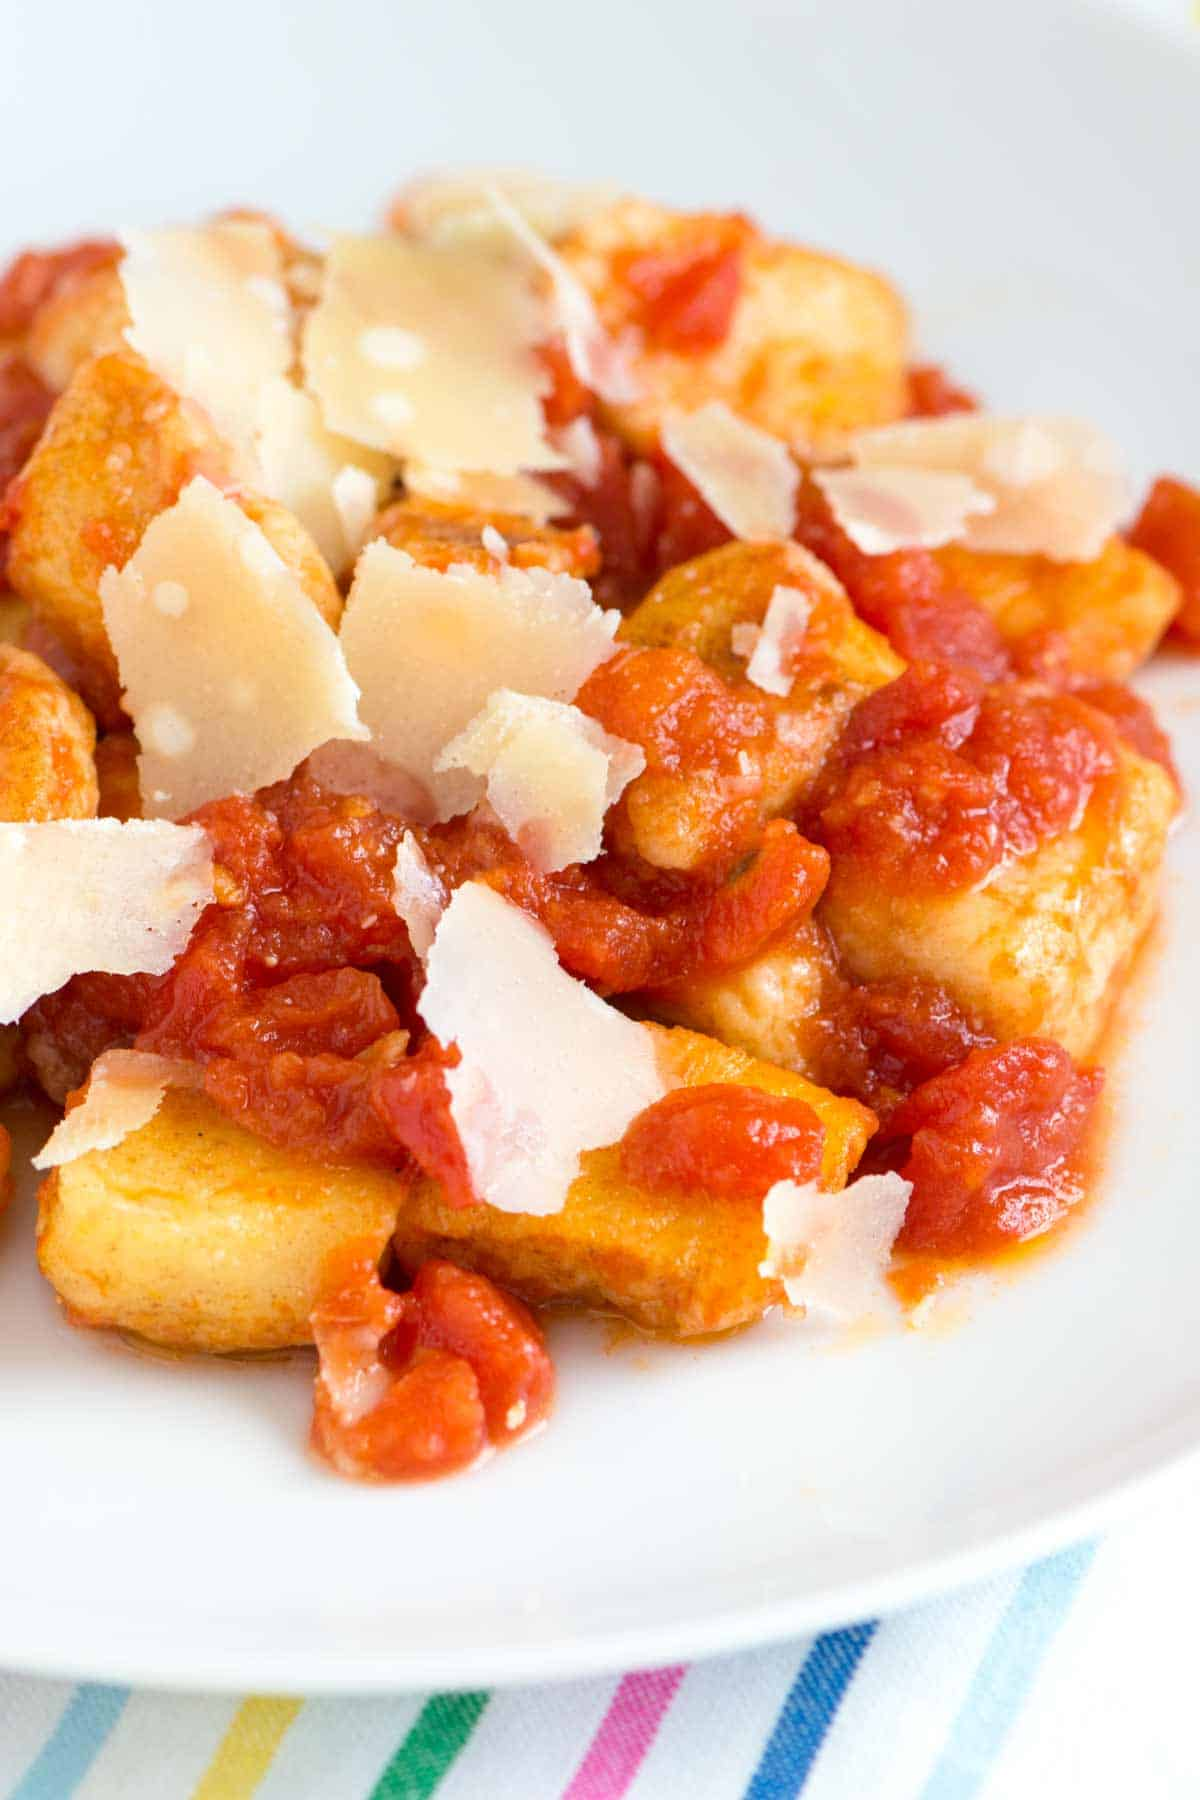 How to Make Homemade Gnocchi with Ricotta Cheese